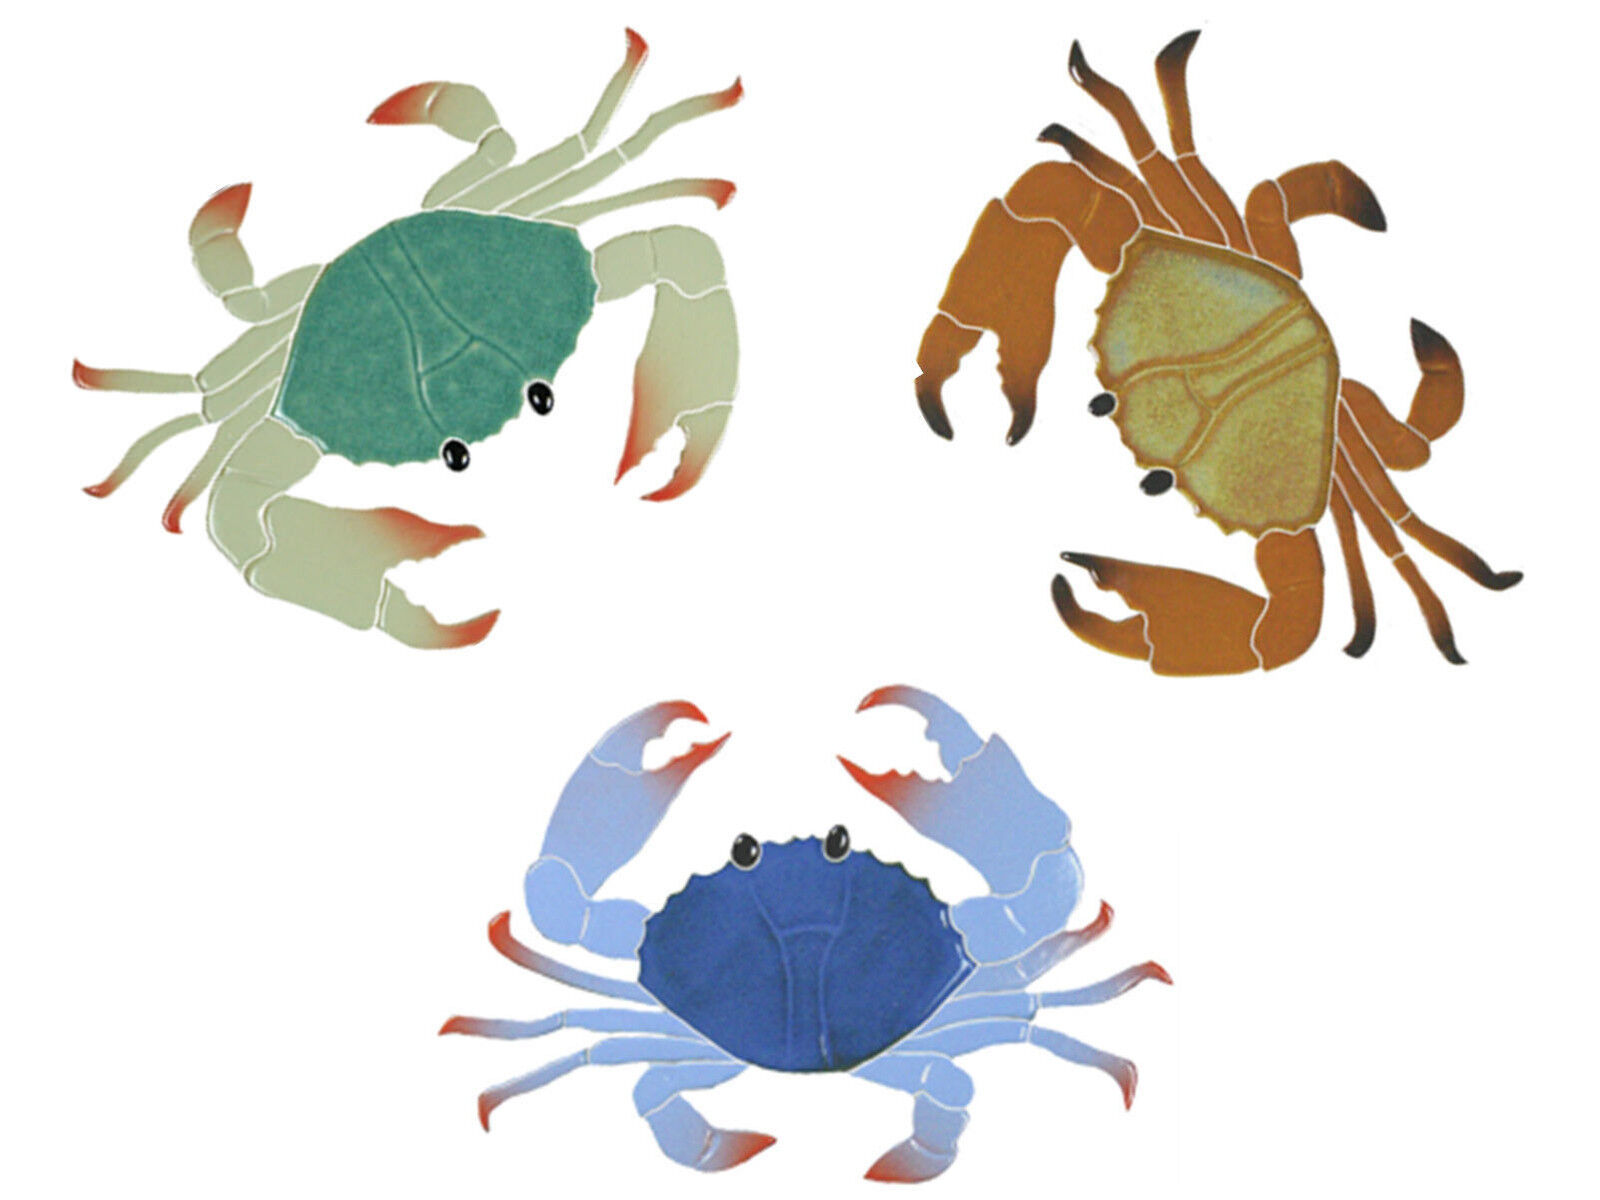 Mosaic Ceramic Crabs for Swimming Pool or Wall - Many Choices - Free Shipping